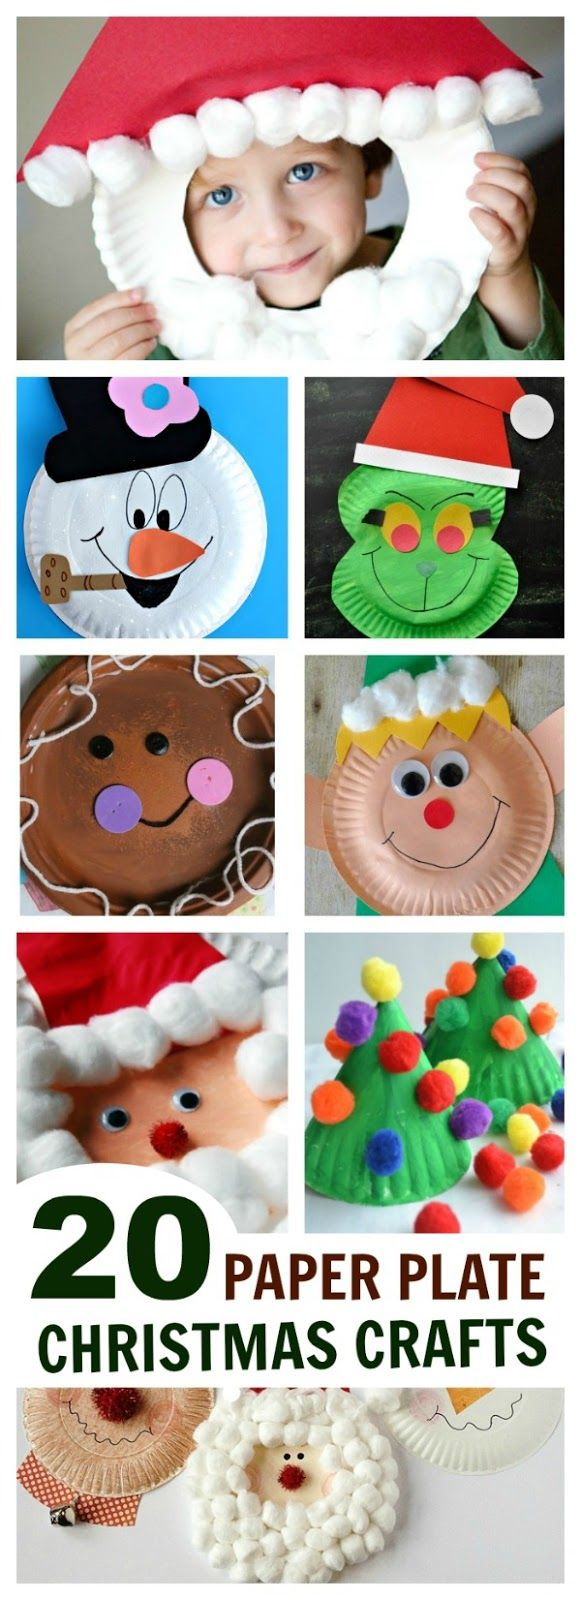 Holiday Paper Plate Crafts Christmas Crafts For Kids Toddler Christmas Christmas Crafts For Toddlers